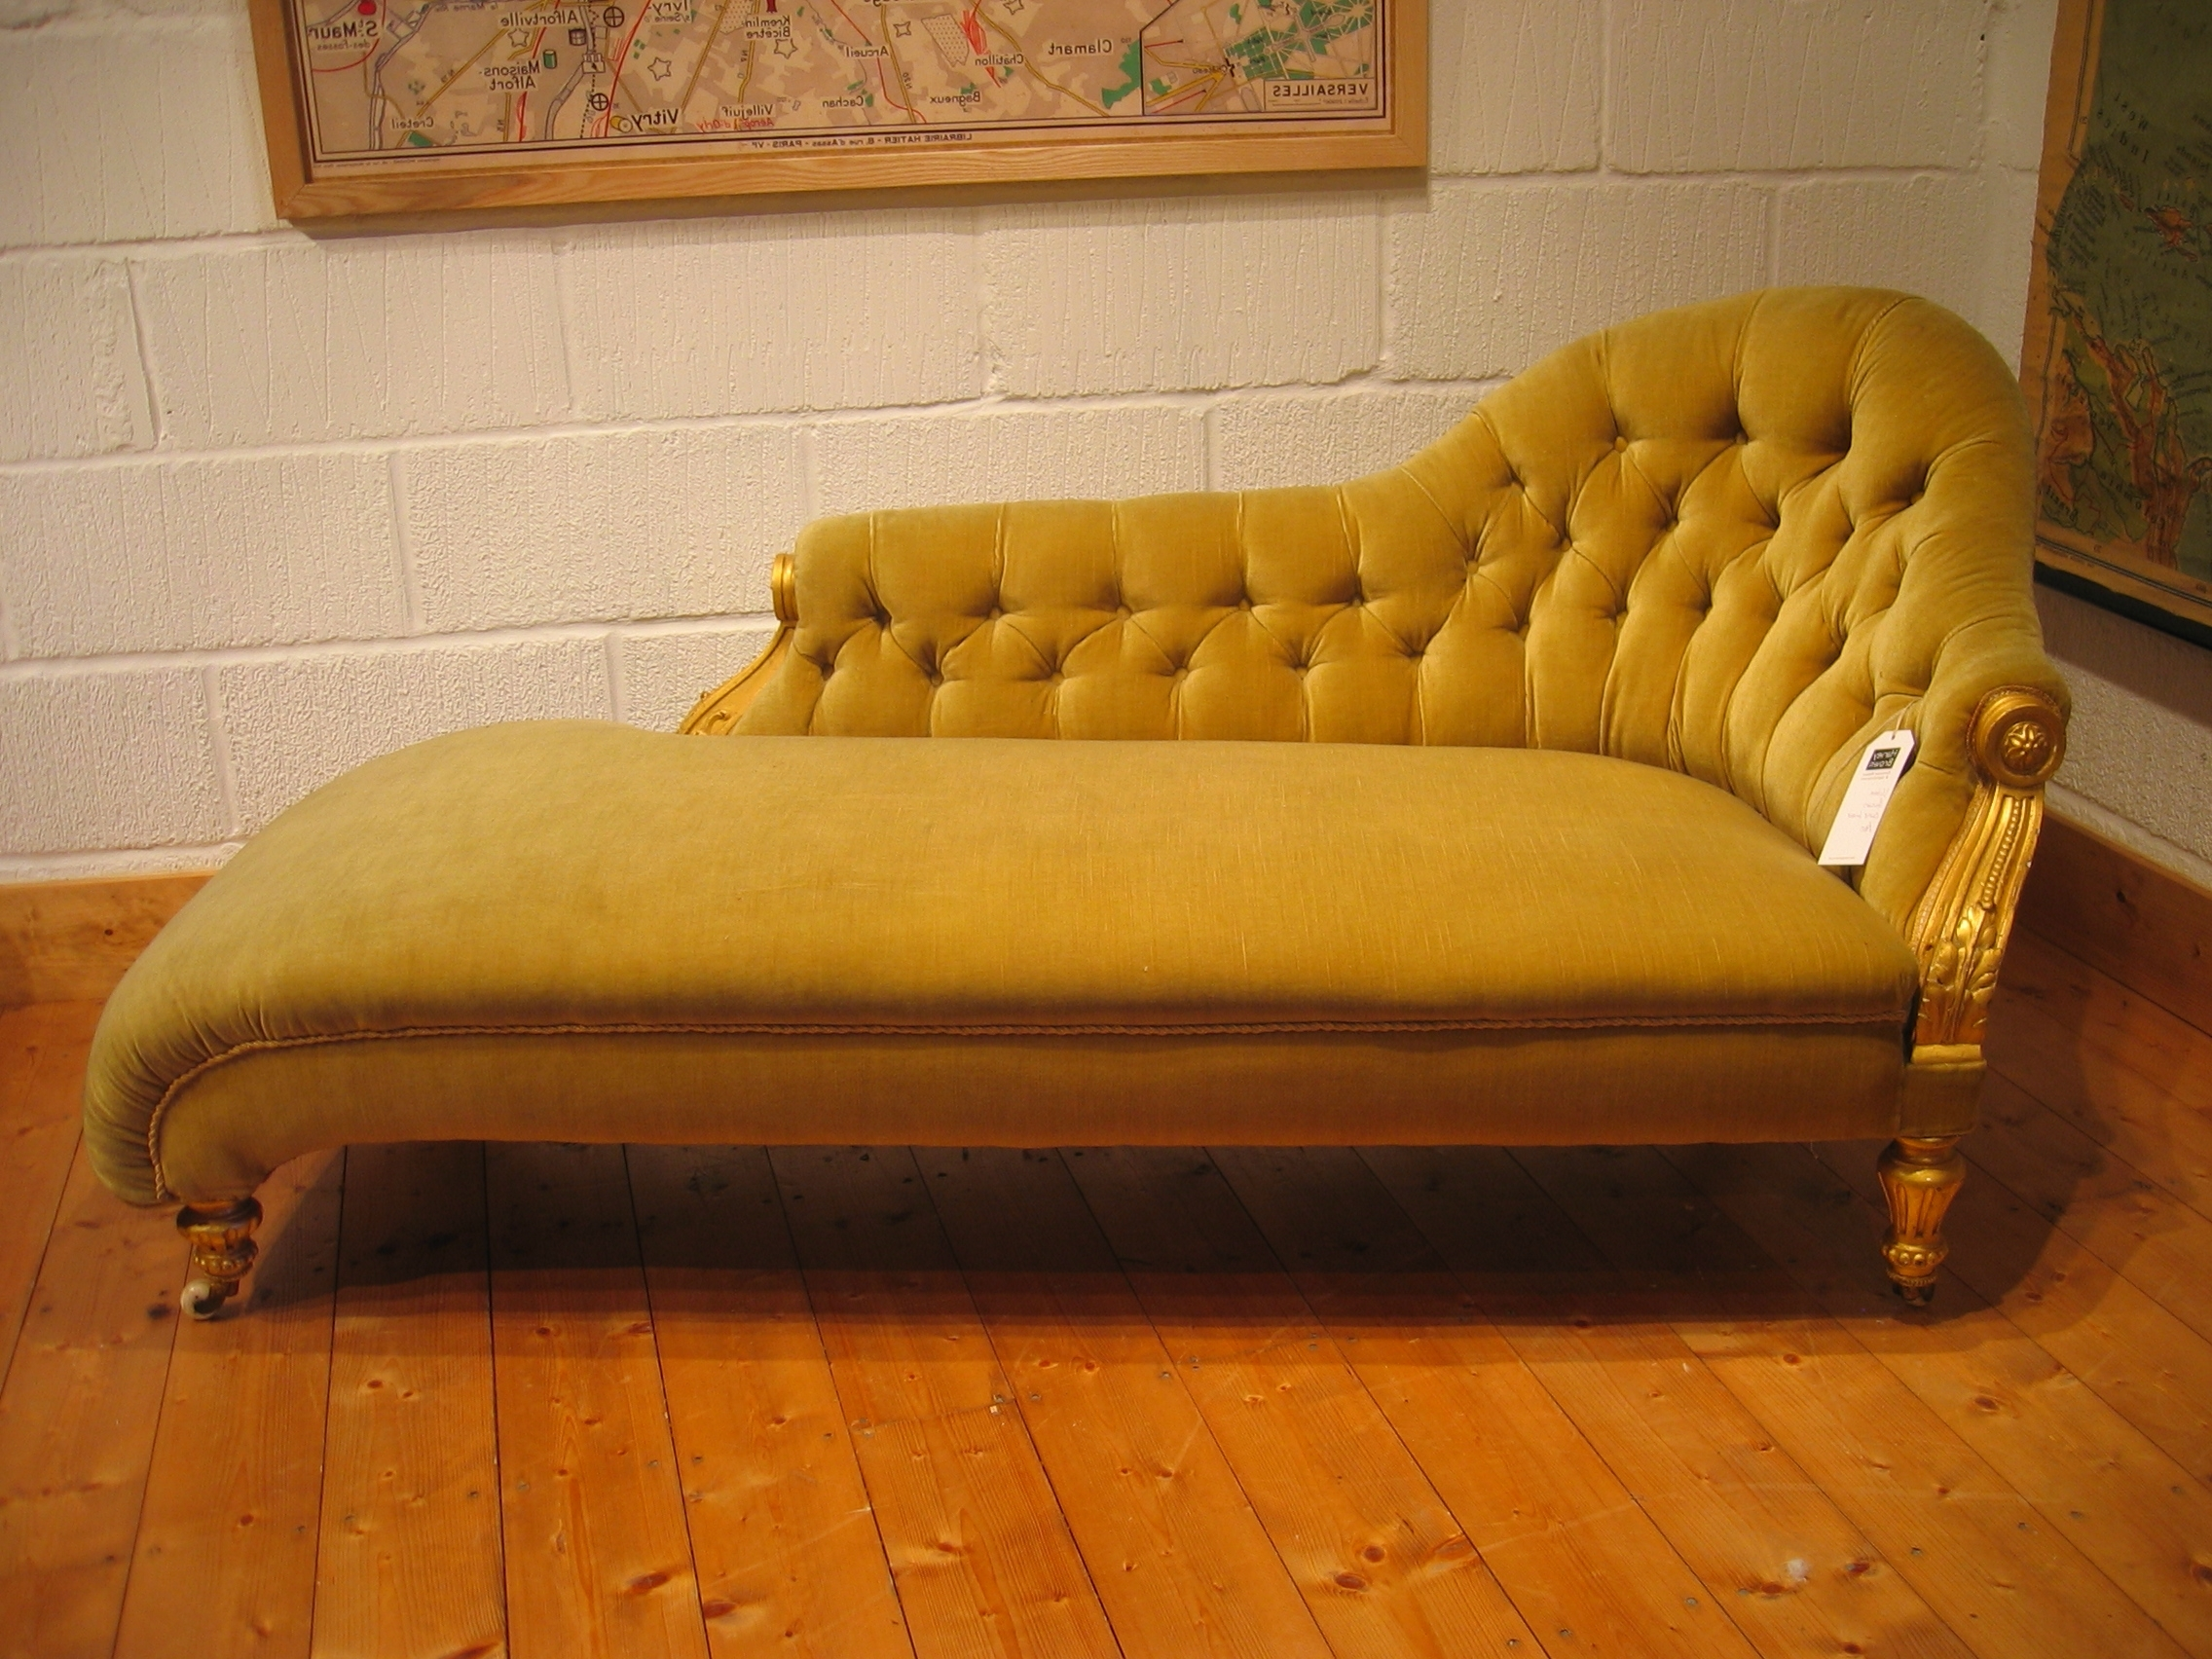 Famous Yellow Chaise Lounge Chairs Regarding Yellow Color Antique Victorian Chaise Lounge Sofa Bed With Wooden (View 3 of 15)